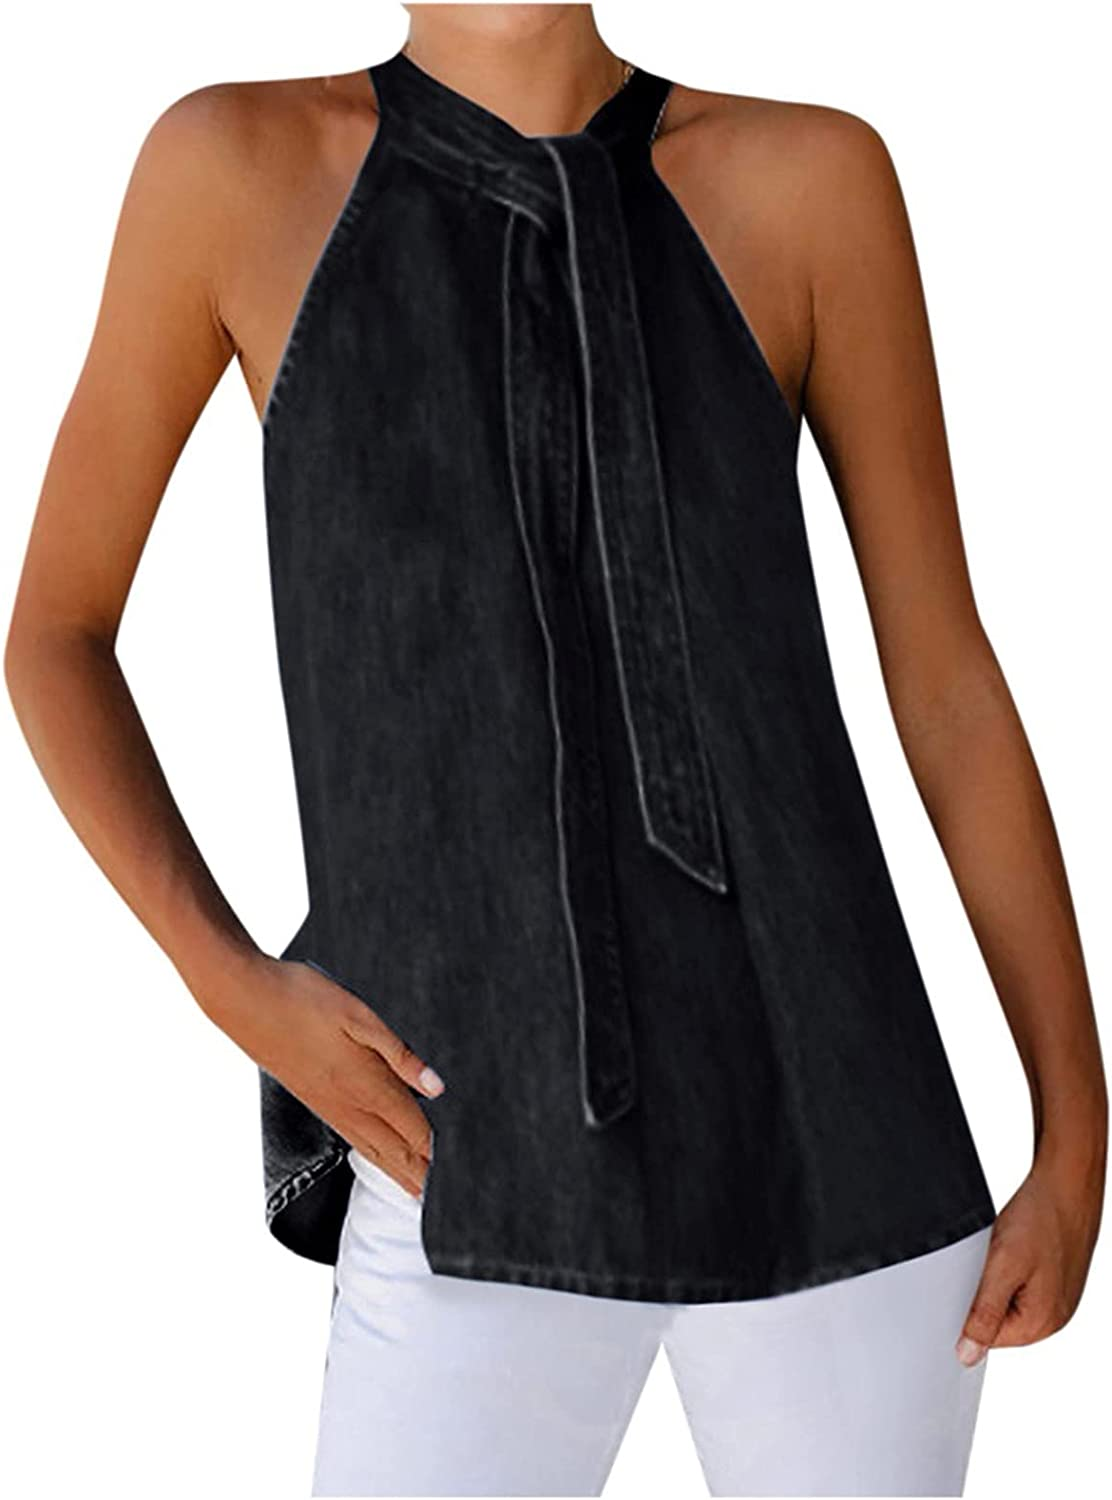 Womens Tank Tops Summer O-Neck Sexy Halter Tie Solid Color Sleeveless Vest T-Shirt Strap Vest Camisole